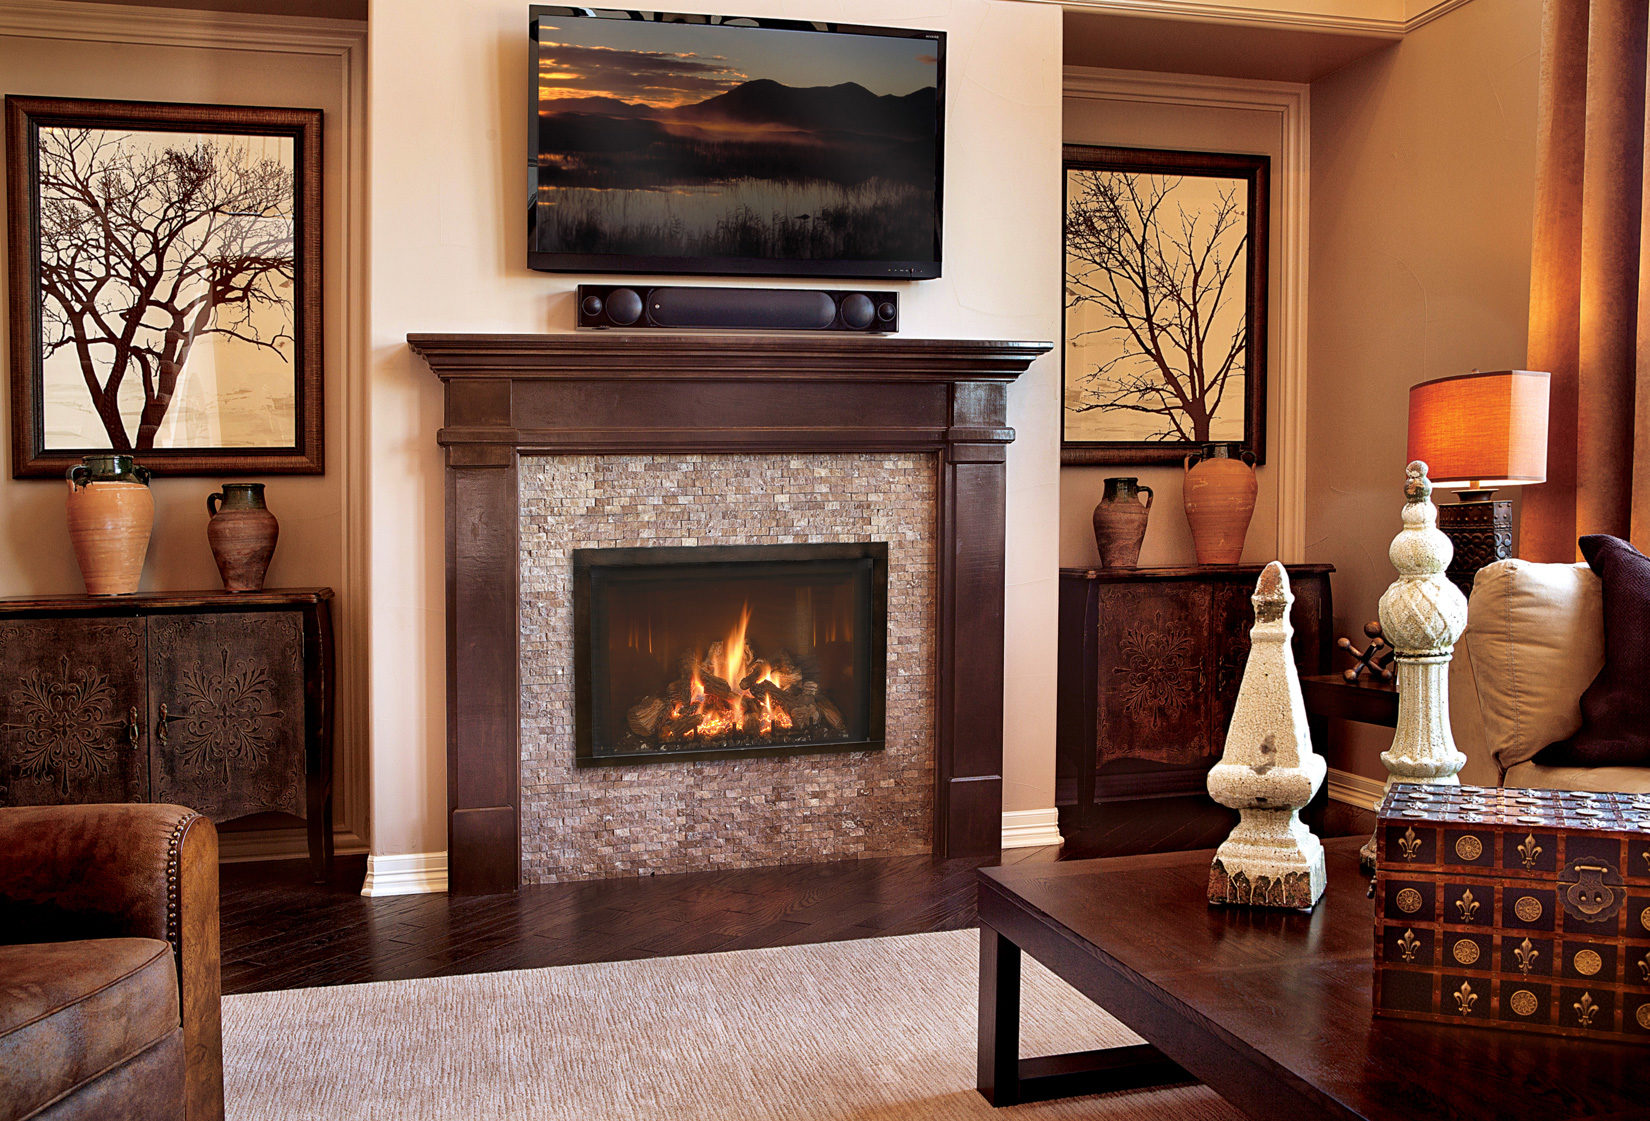 incredible living room designs fireplaces | Mendota Fullview34 - Rettinger Fireplace